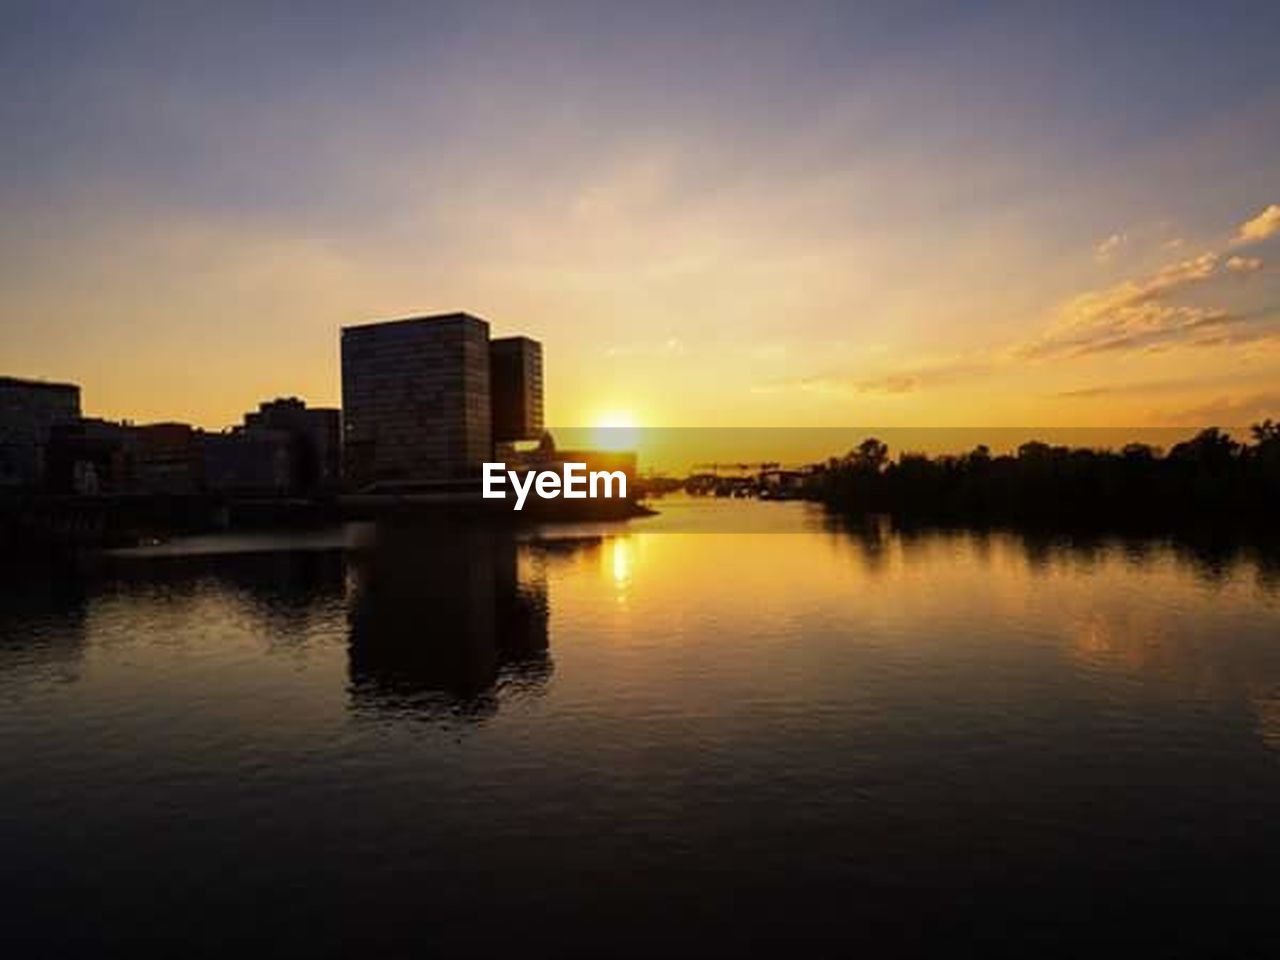 sunset, reflection, architecture, built structure, sky, building exterior, water, city, waterfront, silhouette, outdoors, cloud - sky, skyscraper, no people, urban skyline, nature, tree, modern, beauty in nature, cityscape, day